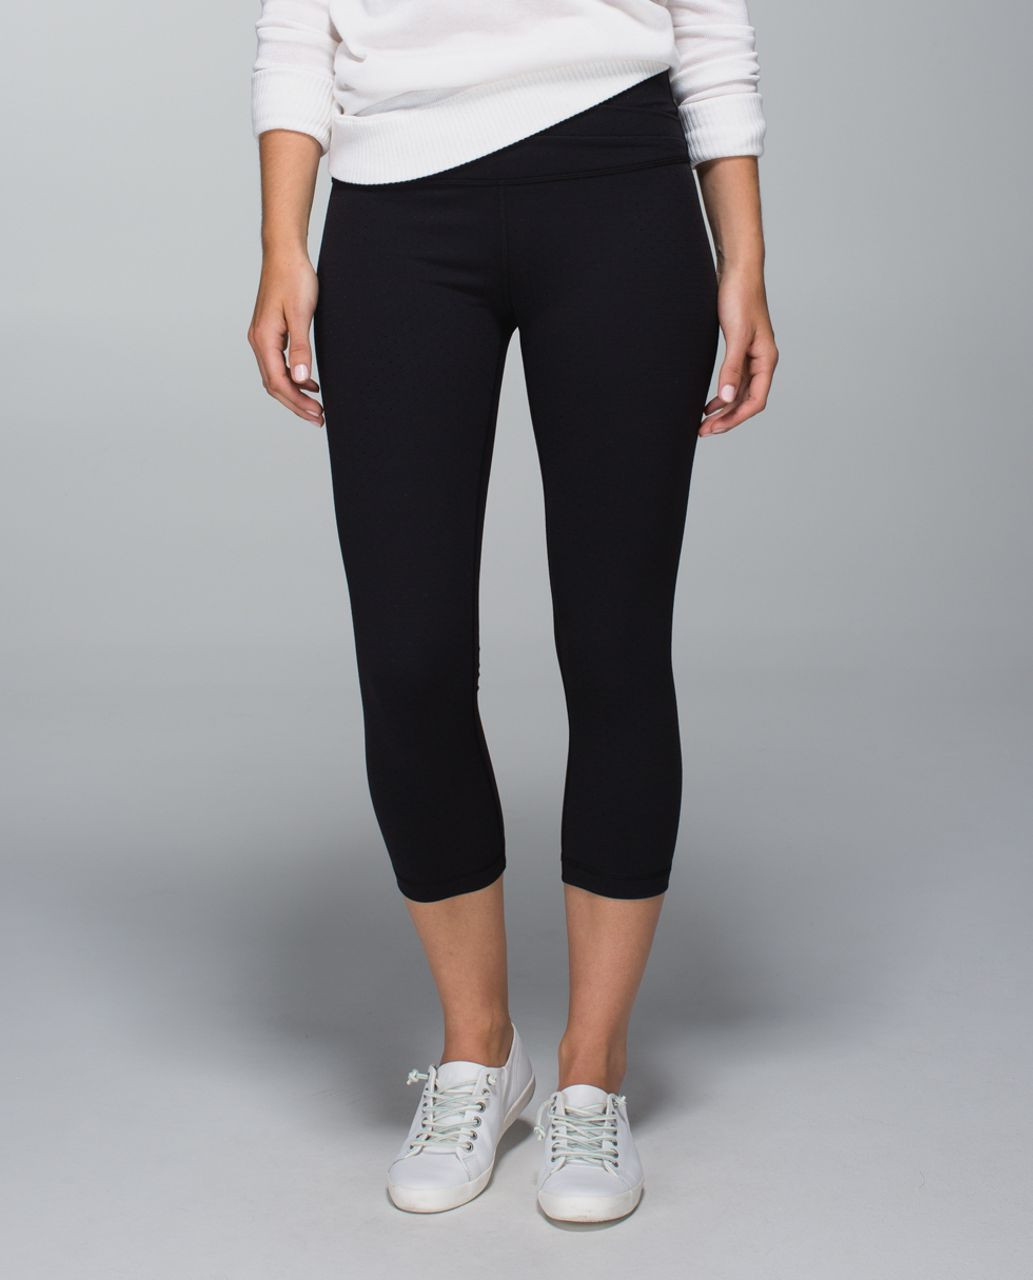 Lululemon Astro Wunder Under Crop II - Shine Dot Black